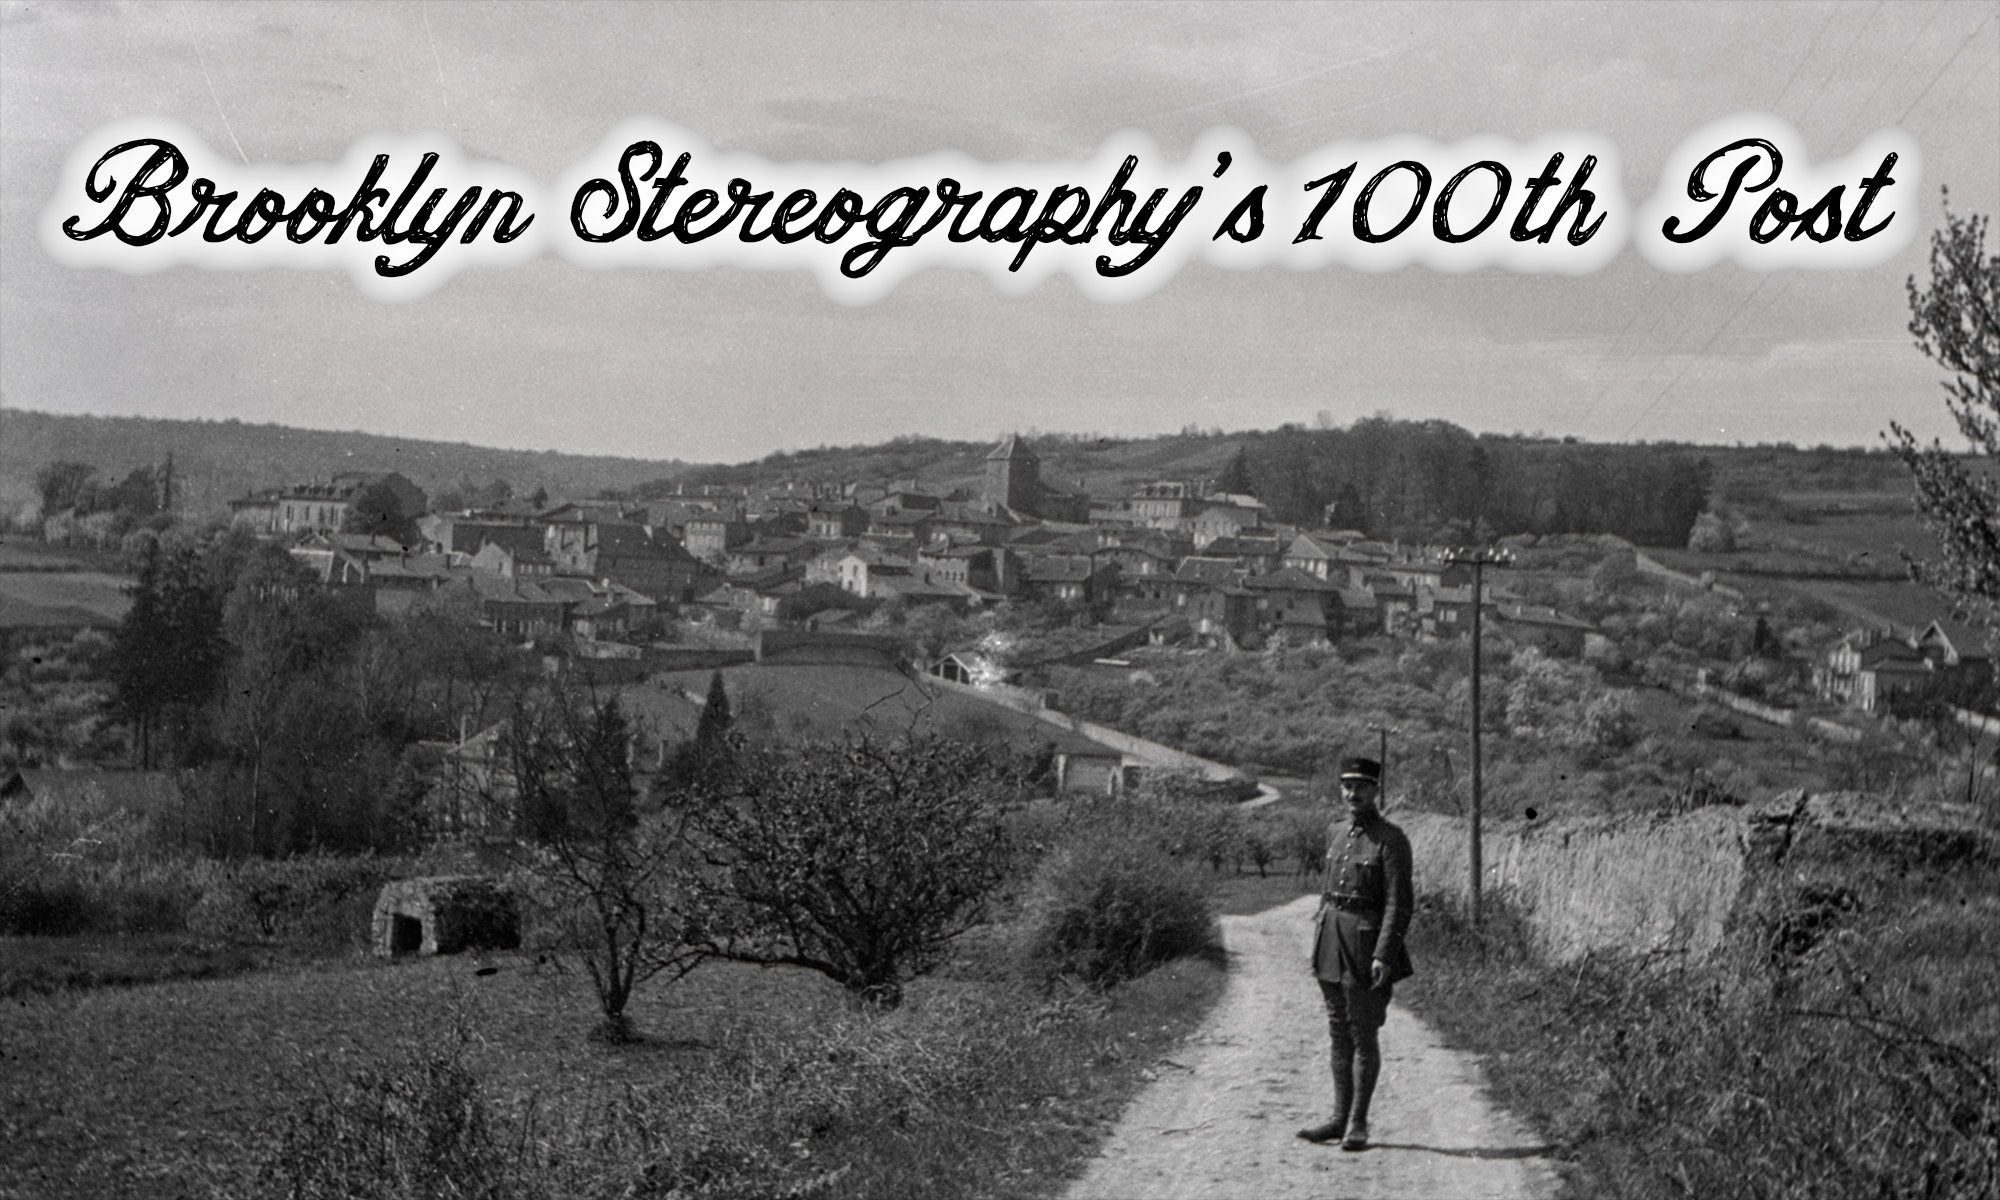 Brooklyn Stereography Turns 100… with News, Updates, Stats – and 3D!